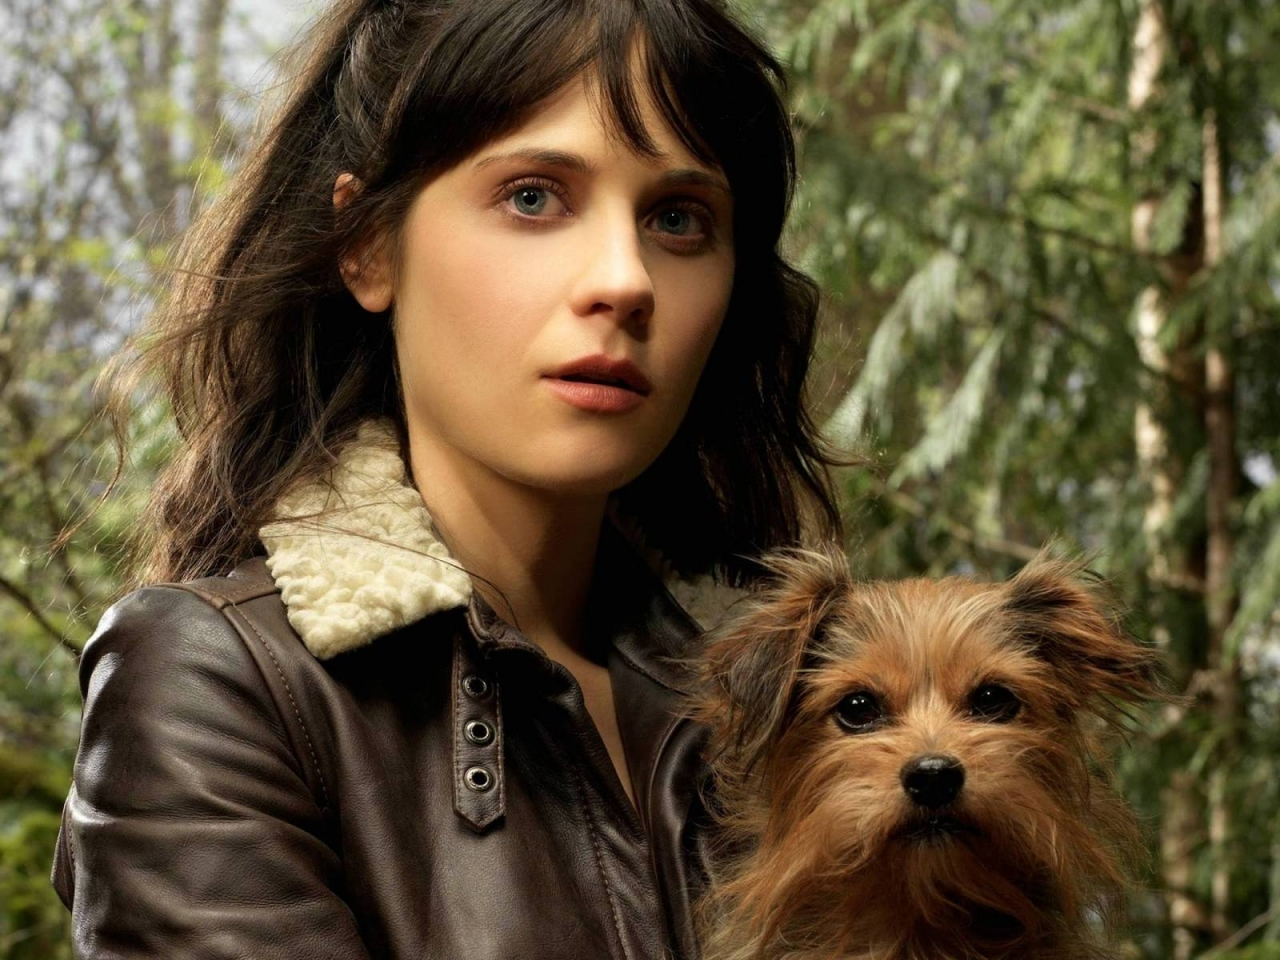 Zooey Deschanel Little Dog for 1280 x 960 resolution